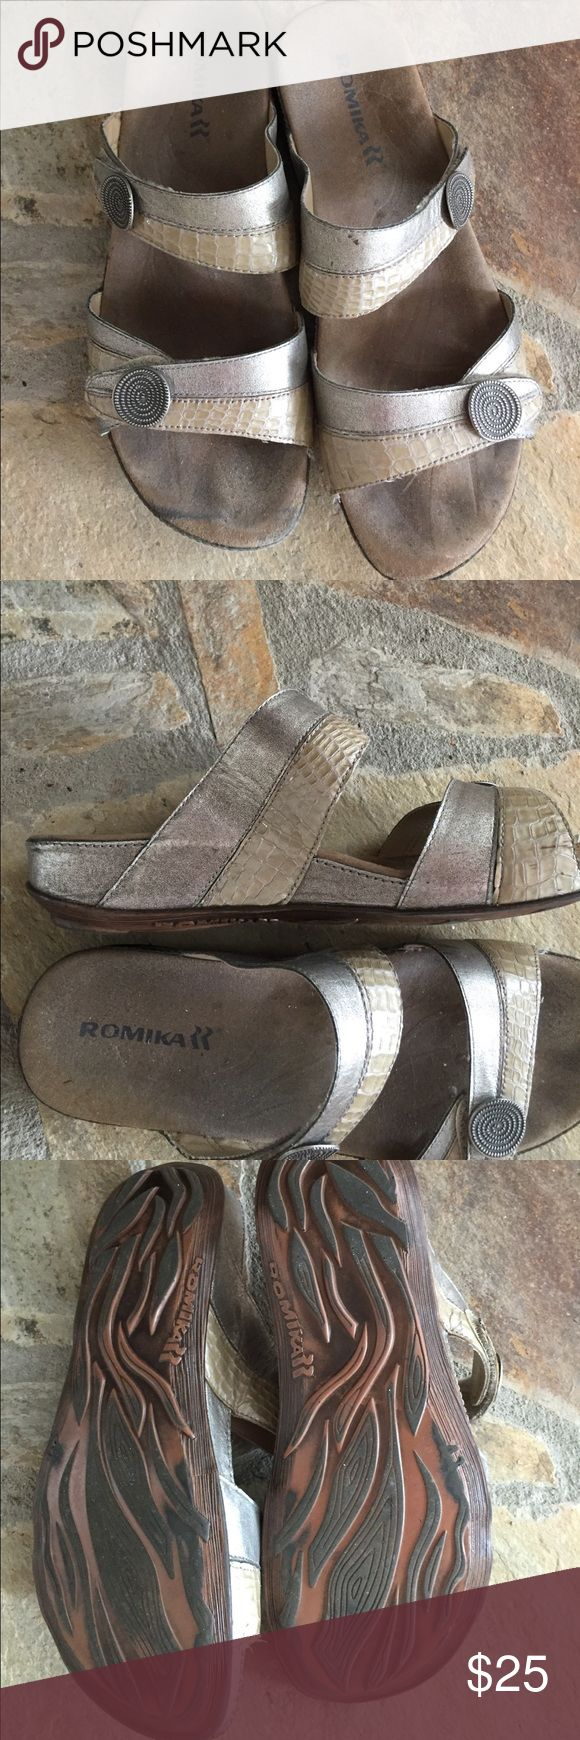 Romika sandals Very comfortable sandals. romika Shoes Sandals